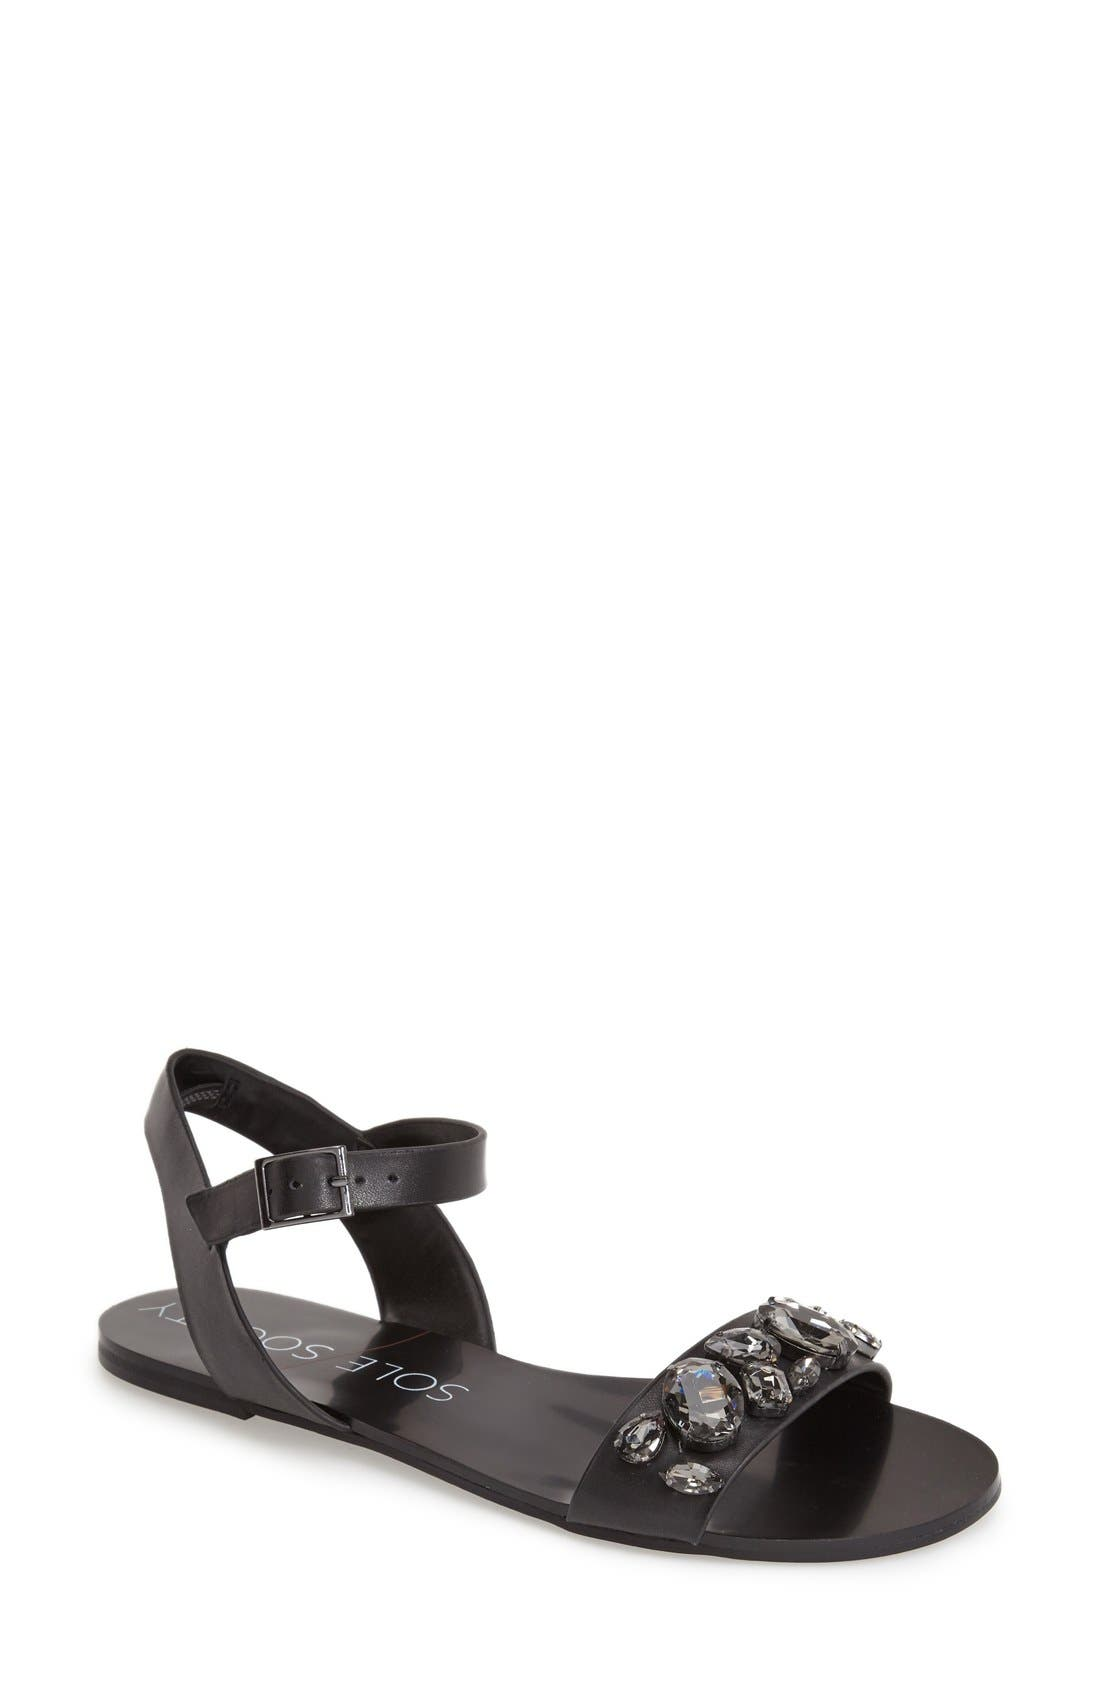 Alternate Image 1 Selected - Sole Society 'Gemma' Crystal Ankle Strap Sandal (Women)